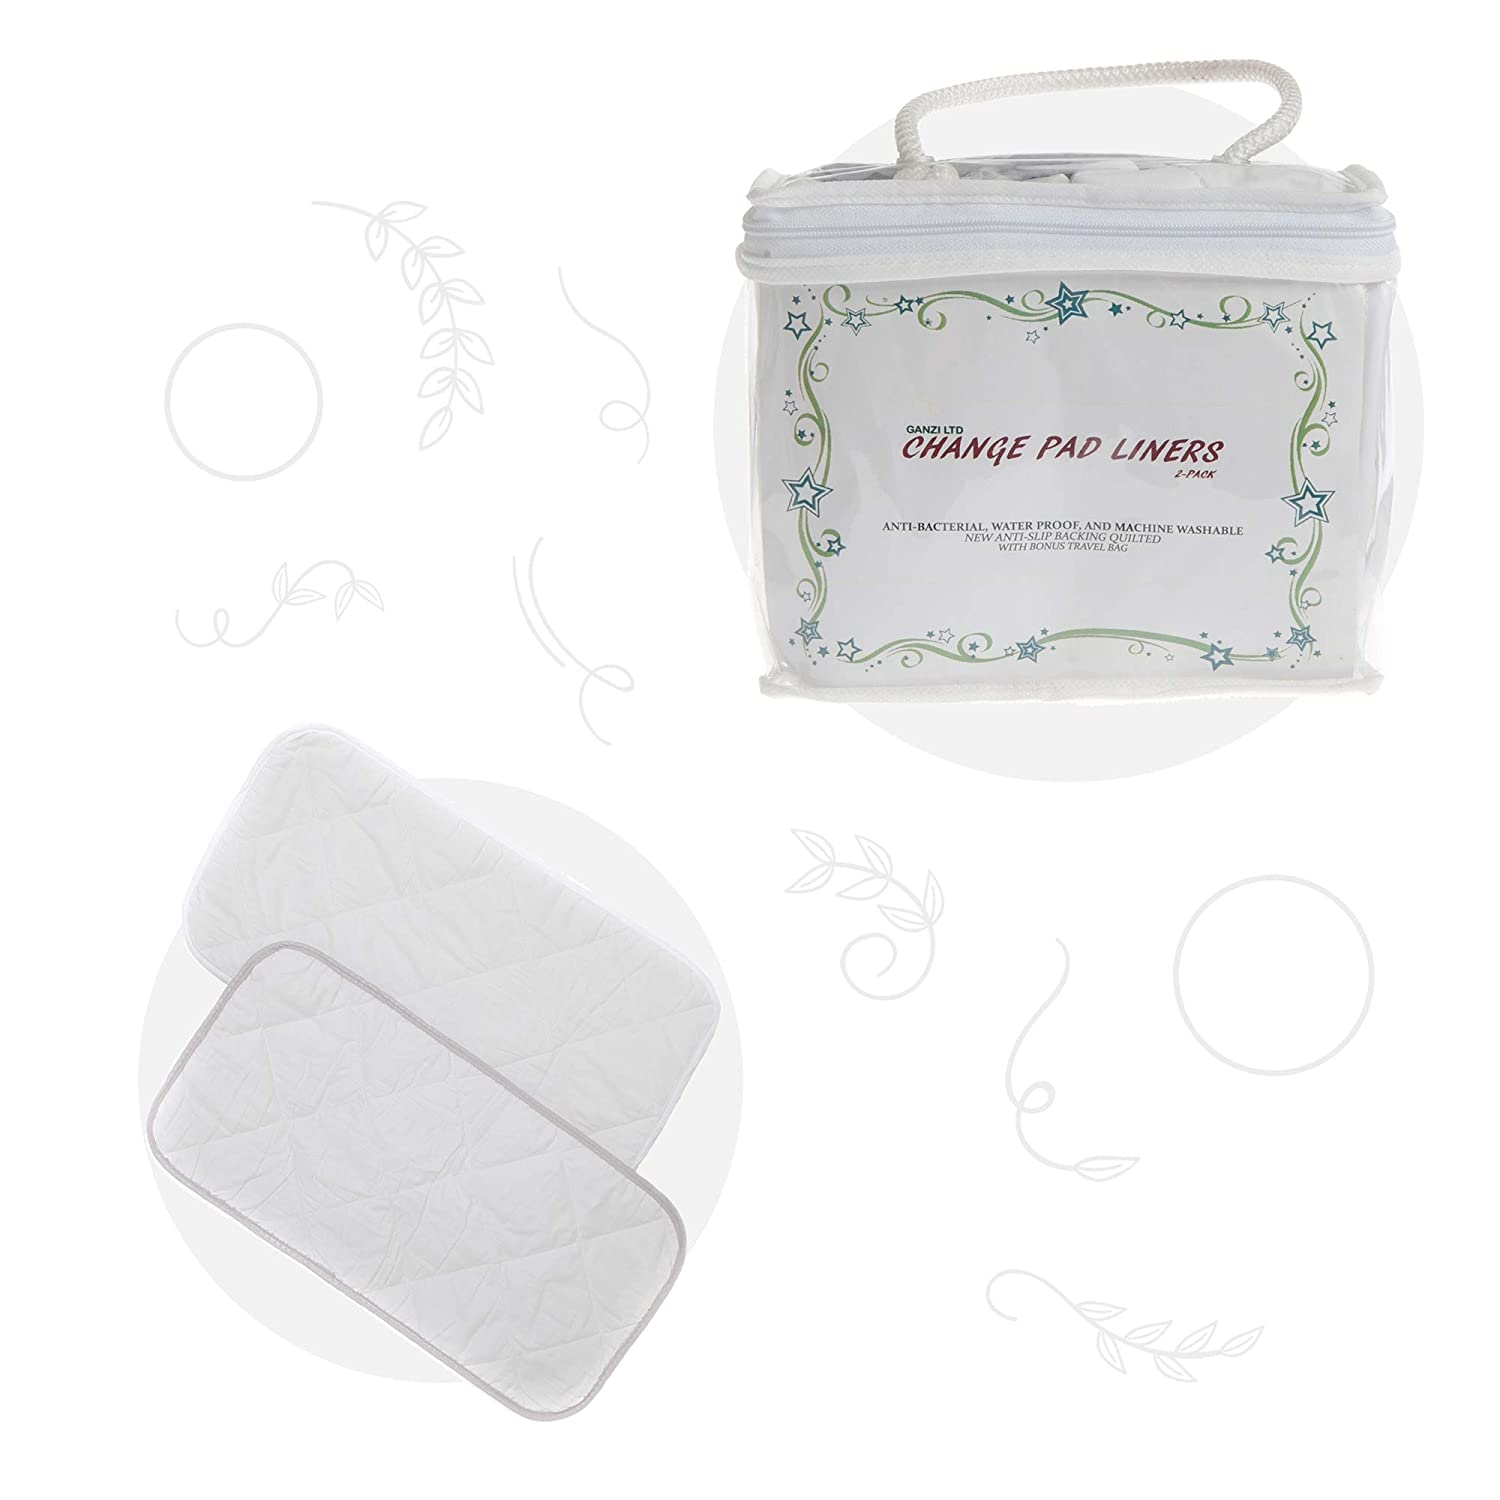 Machine Washable Baby Changing Pad Liners Pack of 2 With Bonus Travel Bag Water Proof Premium